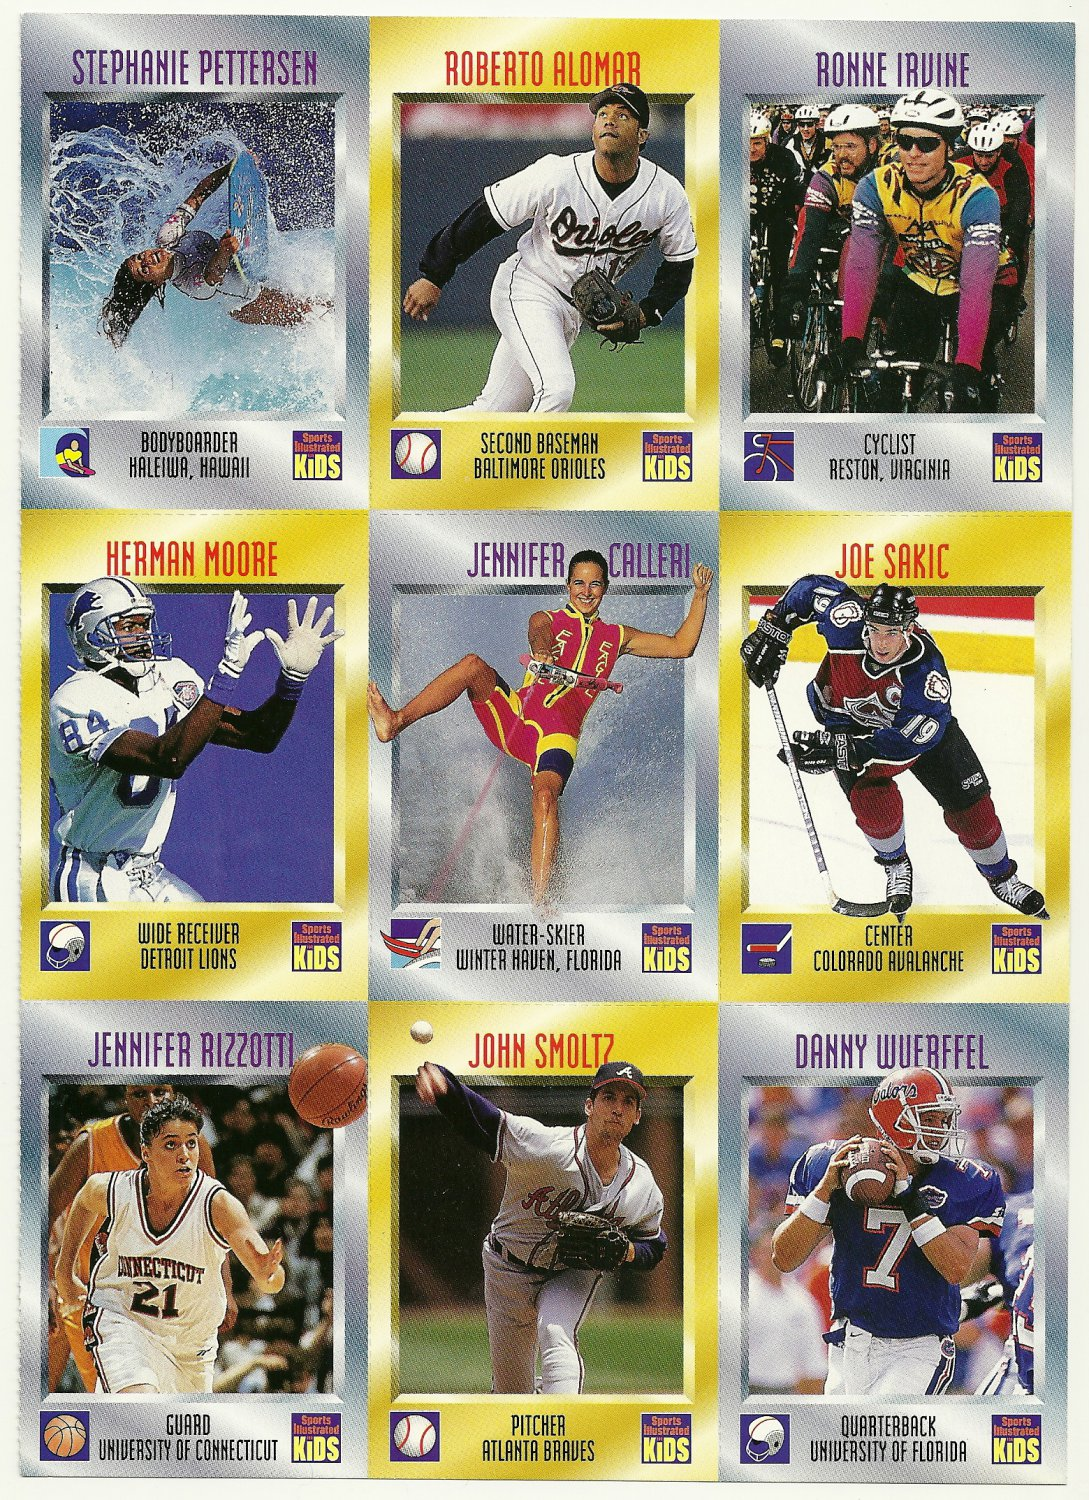 SI SPORTS ILLUSTRATED FOR KIDS Sheet 9 Trading Cards #496-504 ROBERTO ALOMAR